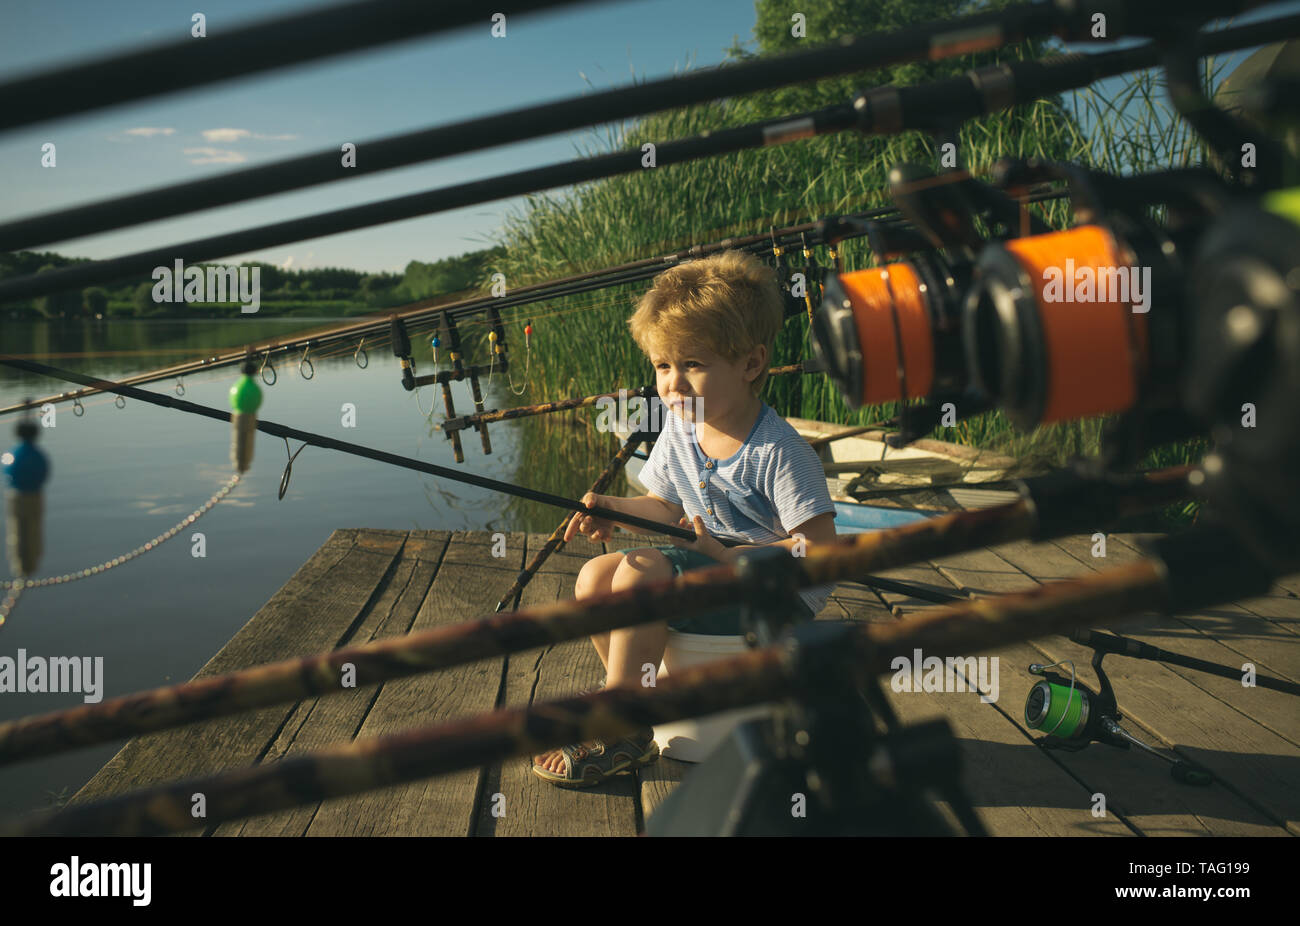 679e0b8f1efe7 Little baby boy fishing on bank of river with fishing rod in hands ...